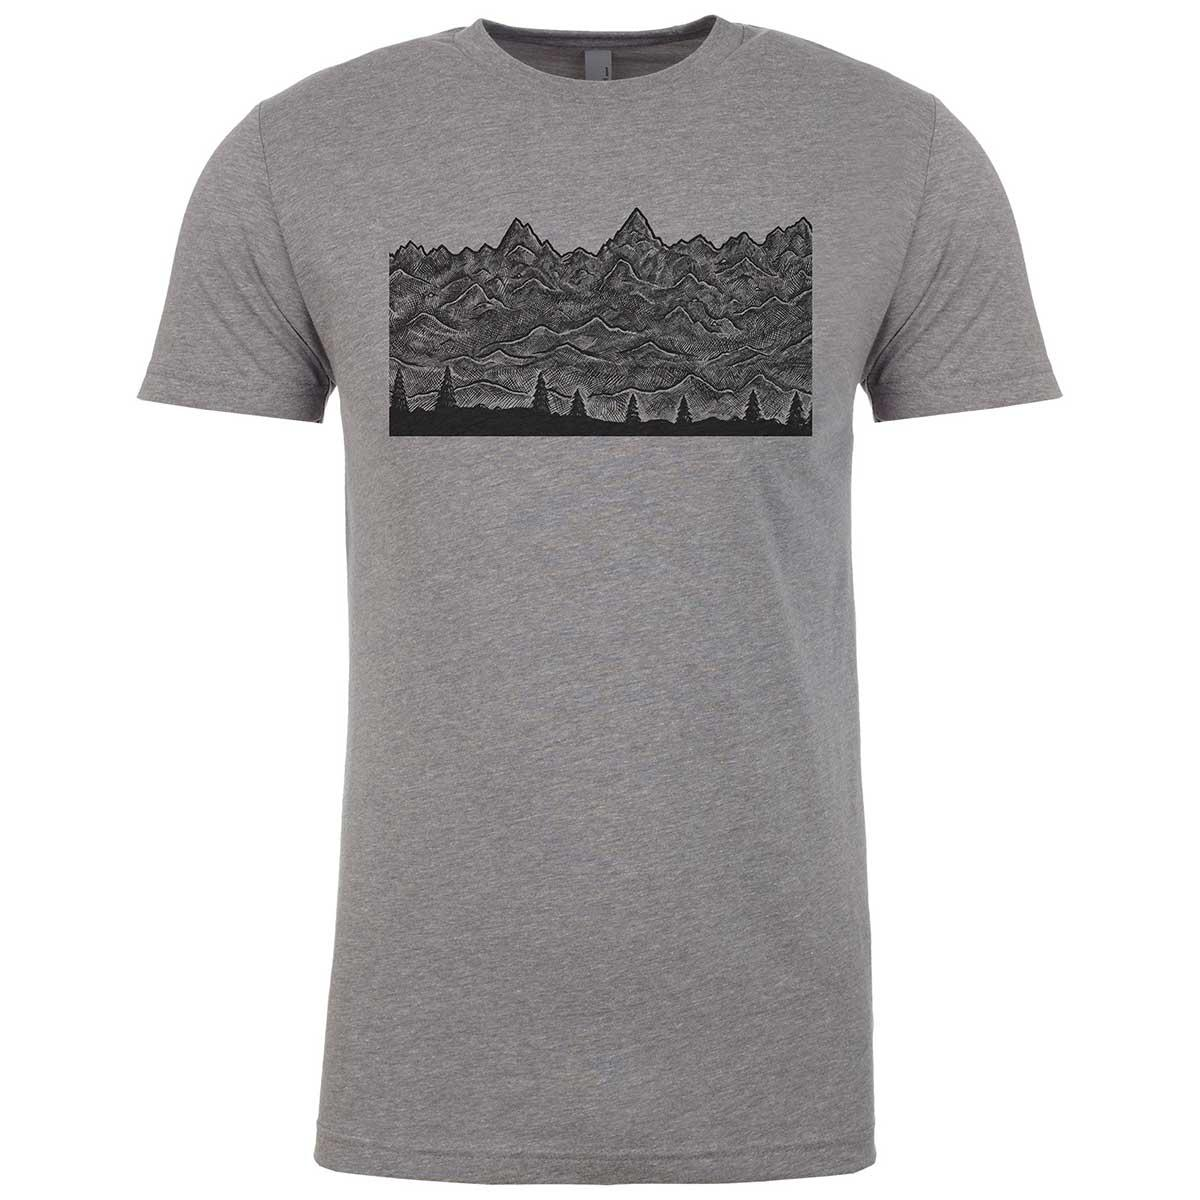 Giro men's Tech Tee in EWS front view